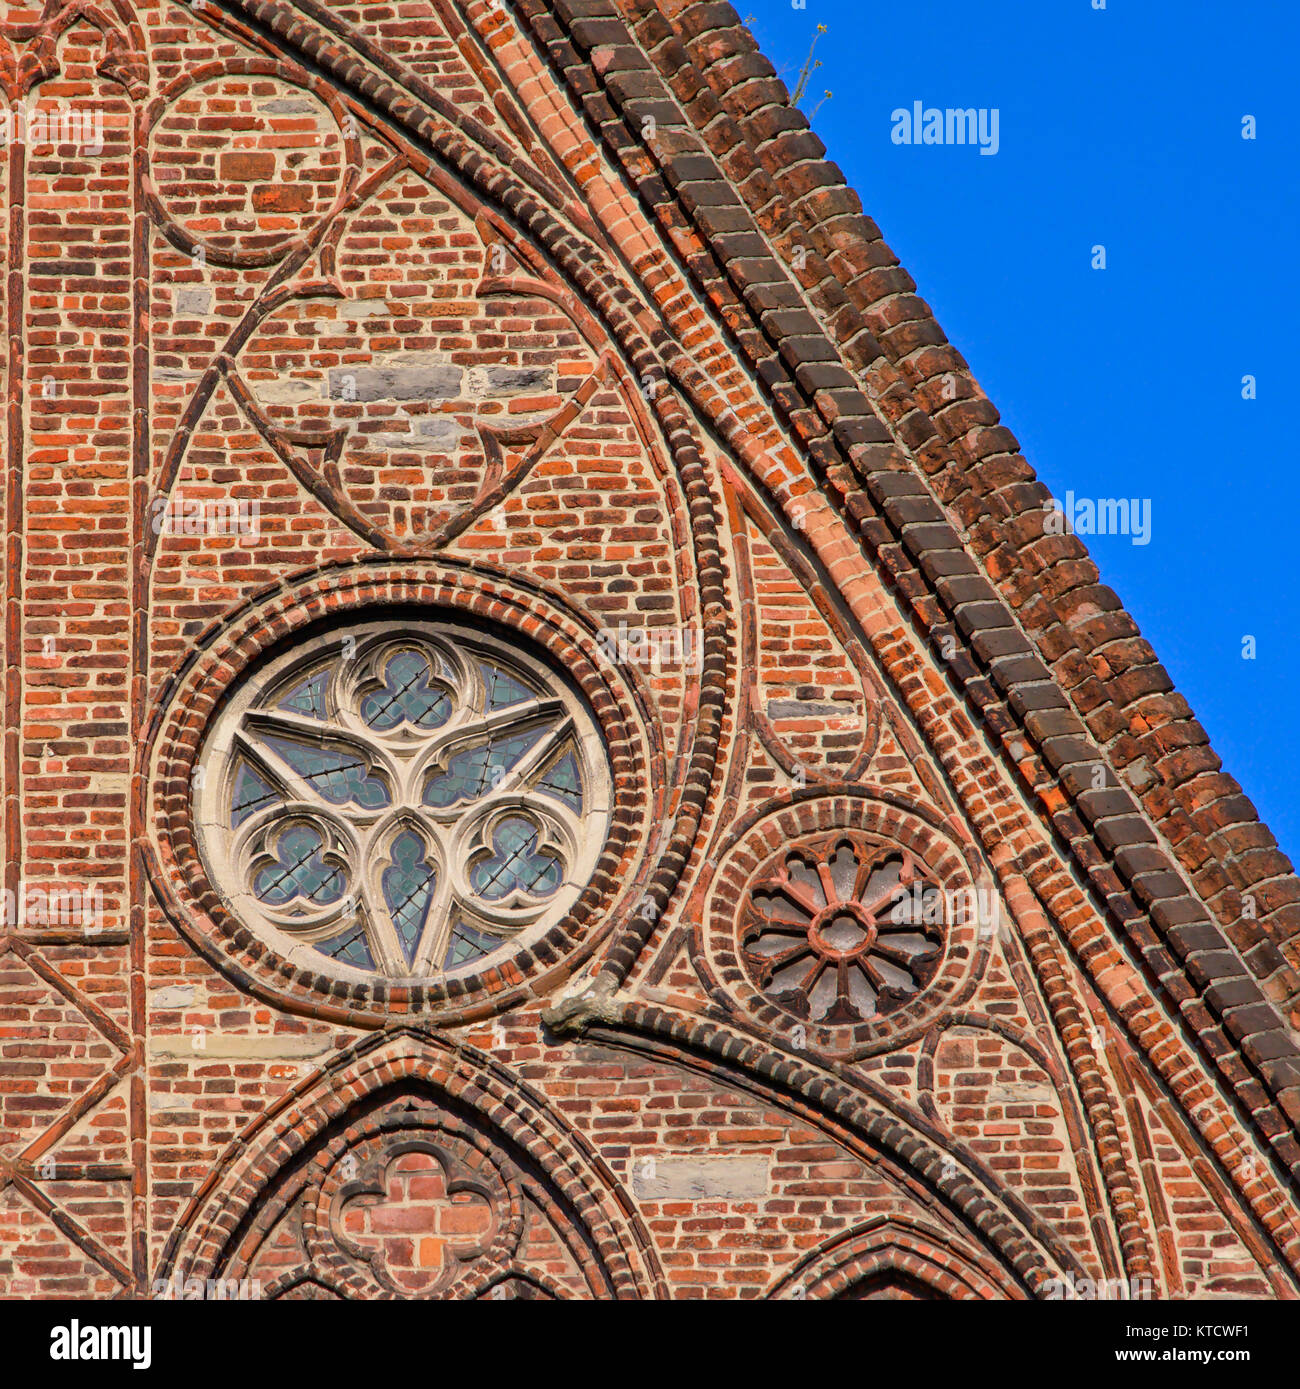 https://c8.alamy.com/comp/KTCWF1/rosette-window-and-decorated-brick-wall-part-of-the-gothic-church-KTCWF1.jpg